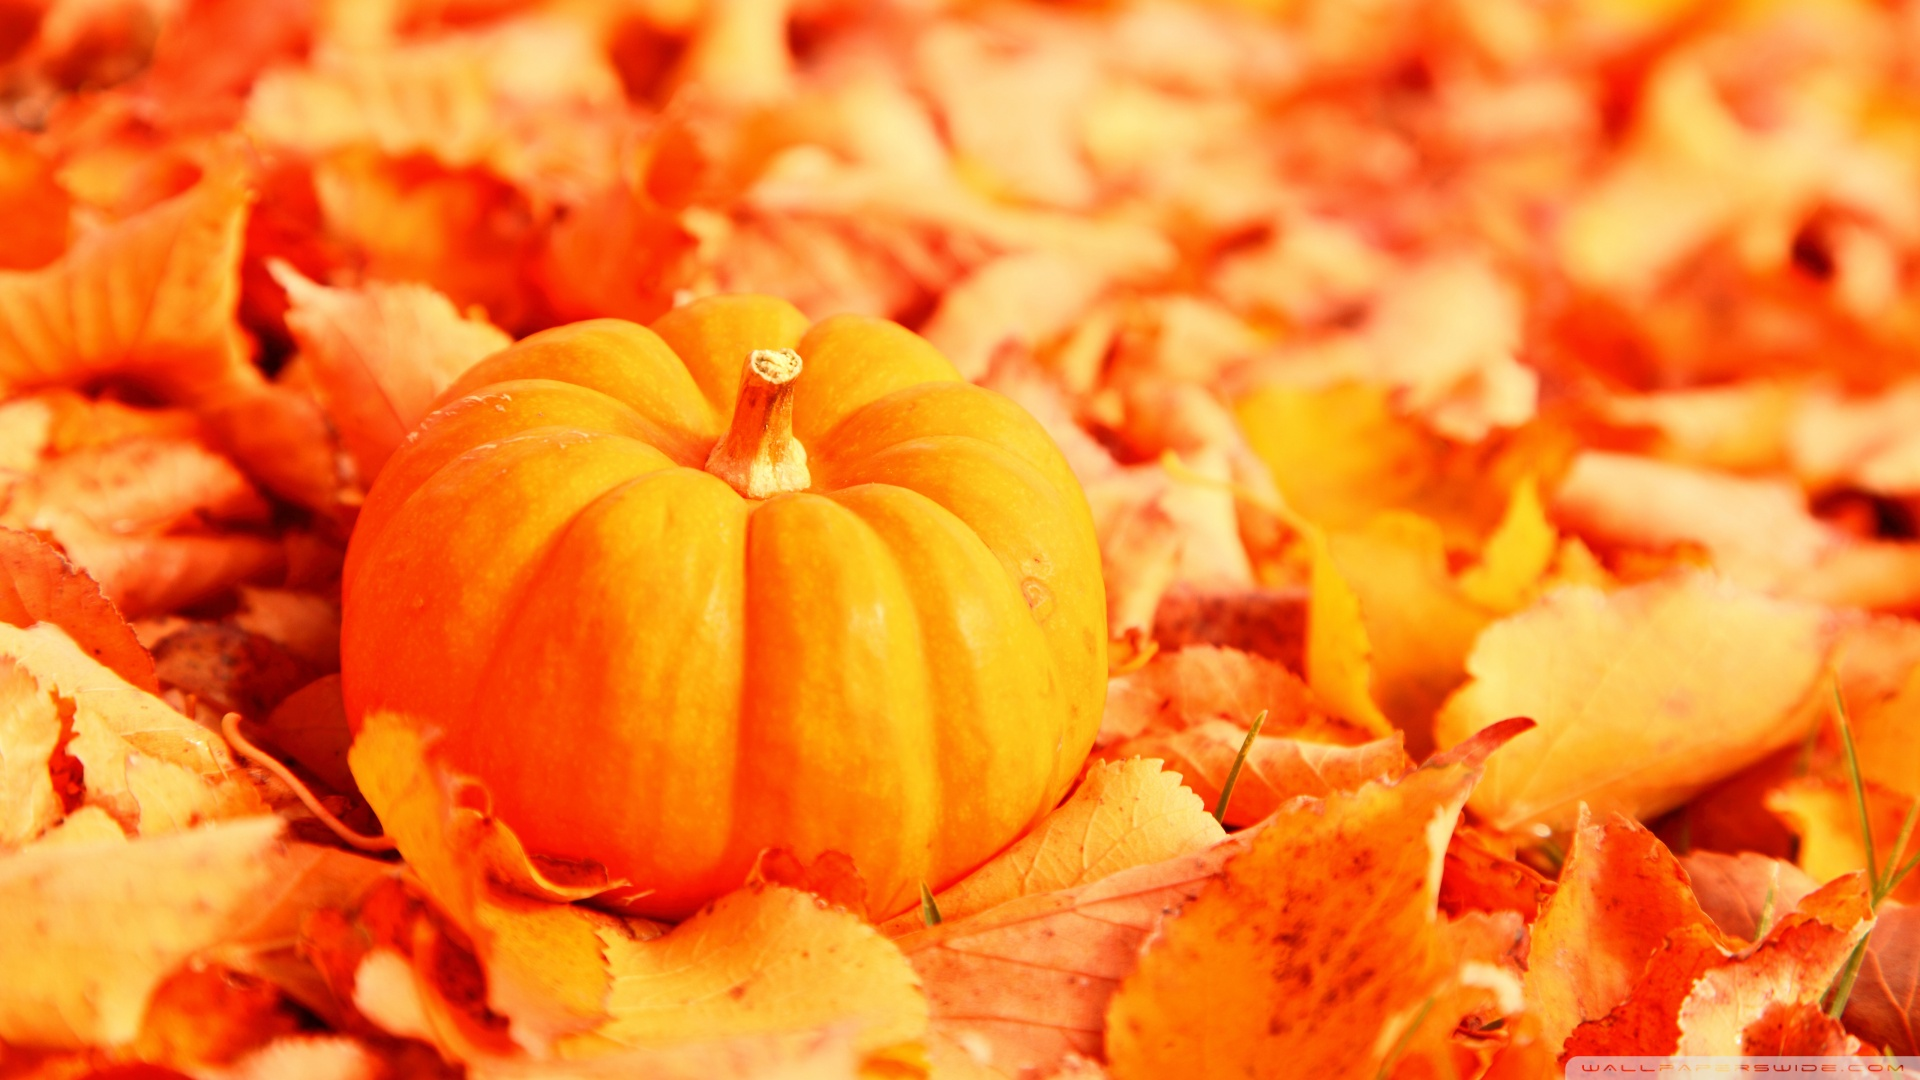 Pumpkin And Autumn Leaves HD desktop wallpaper : High Definition